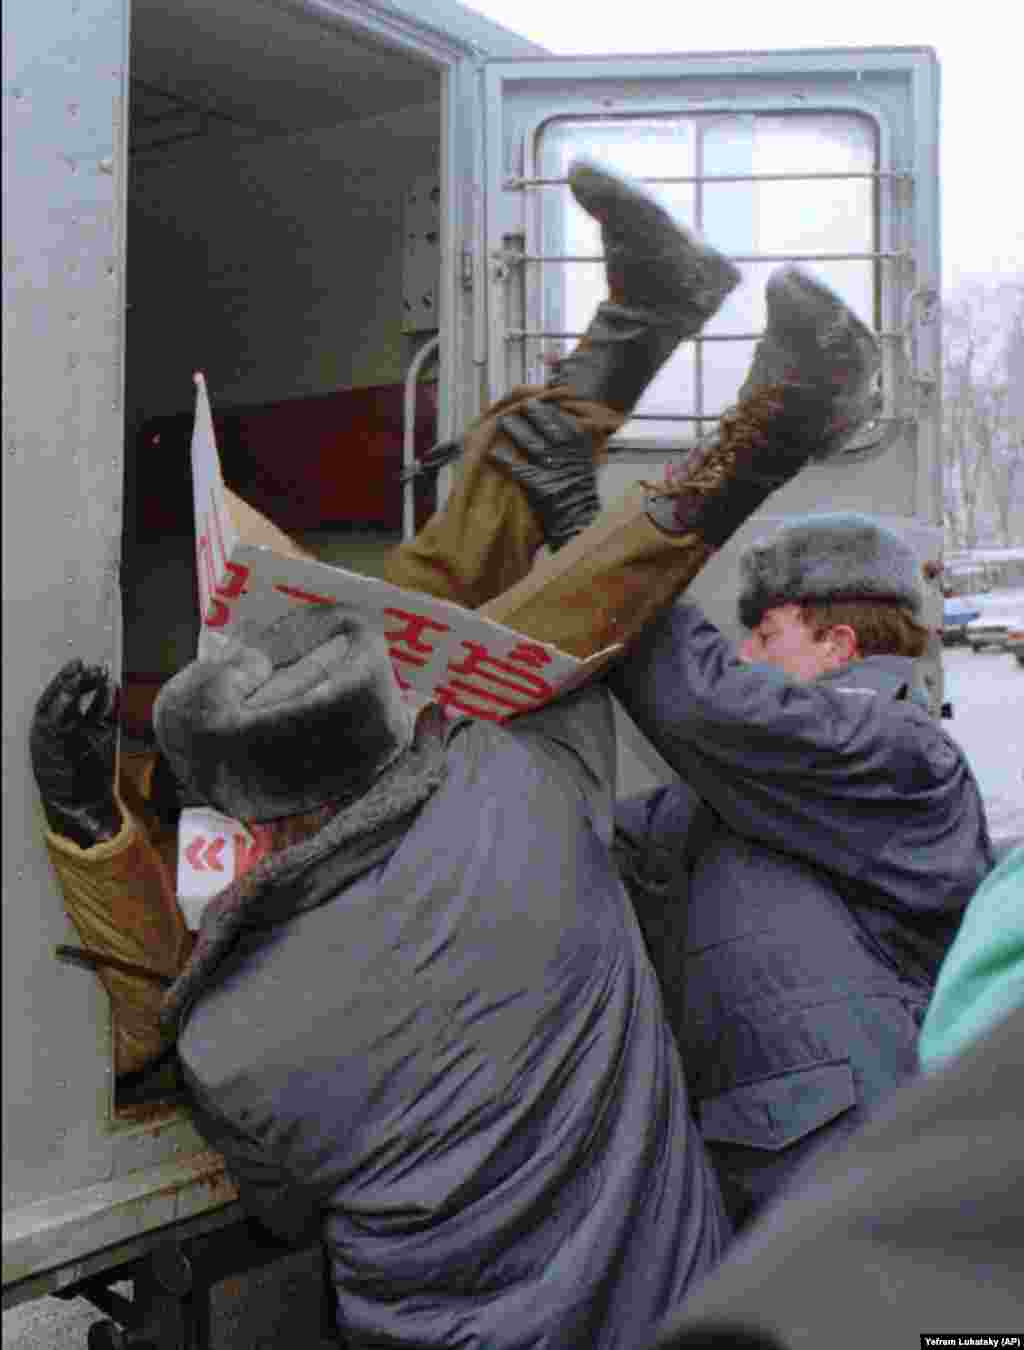 Police officers remove a protester from a rally in Kyiv on January 12, 1996. He was attending a demonstration organized by several members of Ukraine's parliament who were opposed to the denuclearization deal. As the protester is being thrown into a police van, he clings to a sign demanding the resignation of former Ukrainian Defense Minister Valeriy Shmarov.